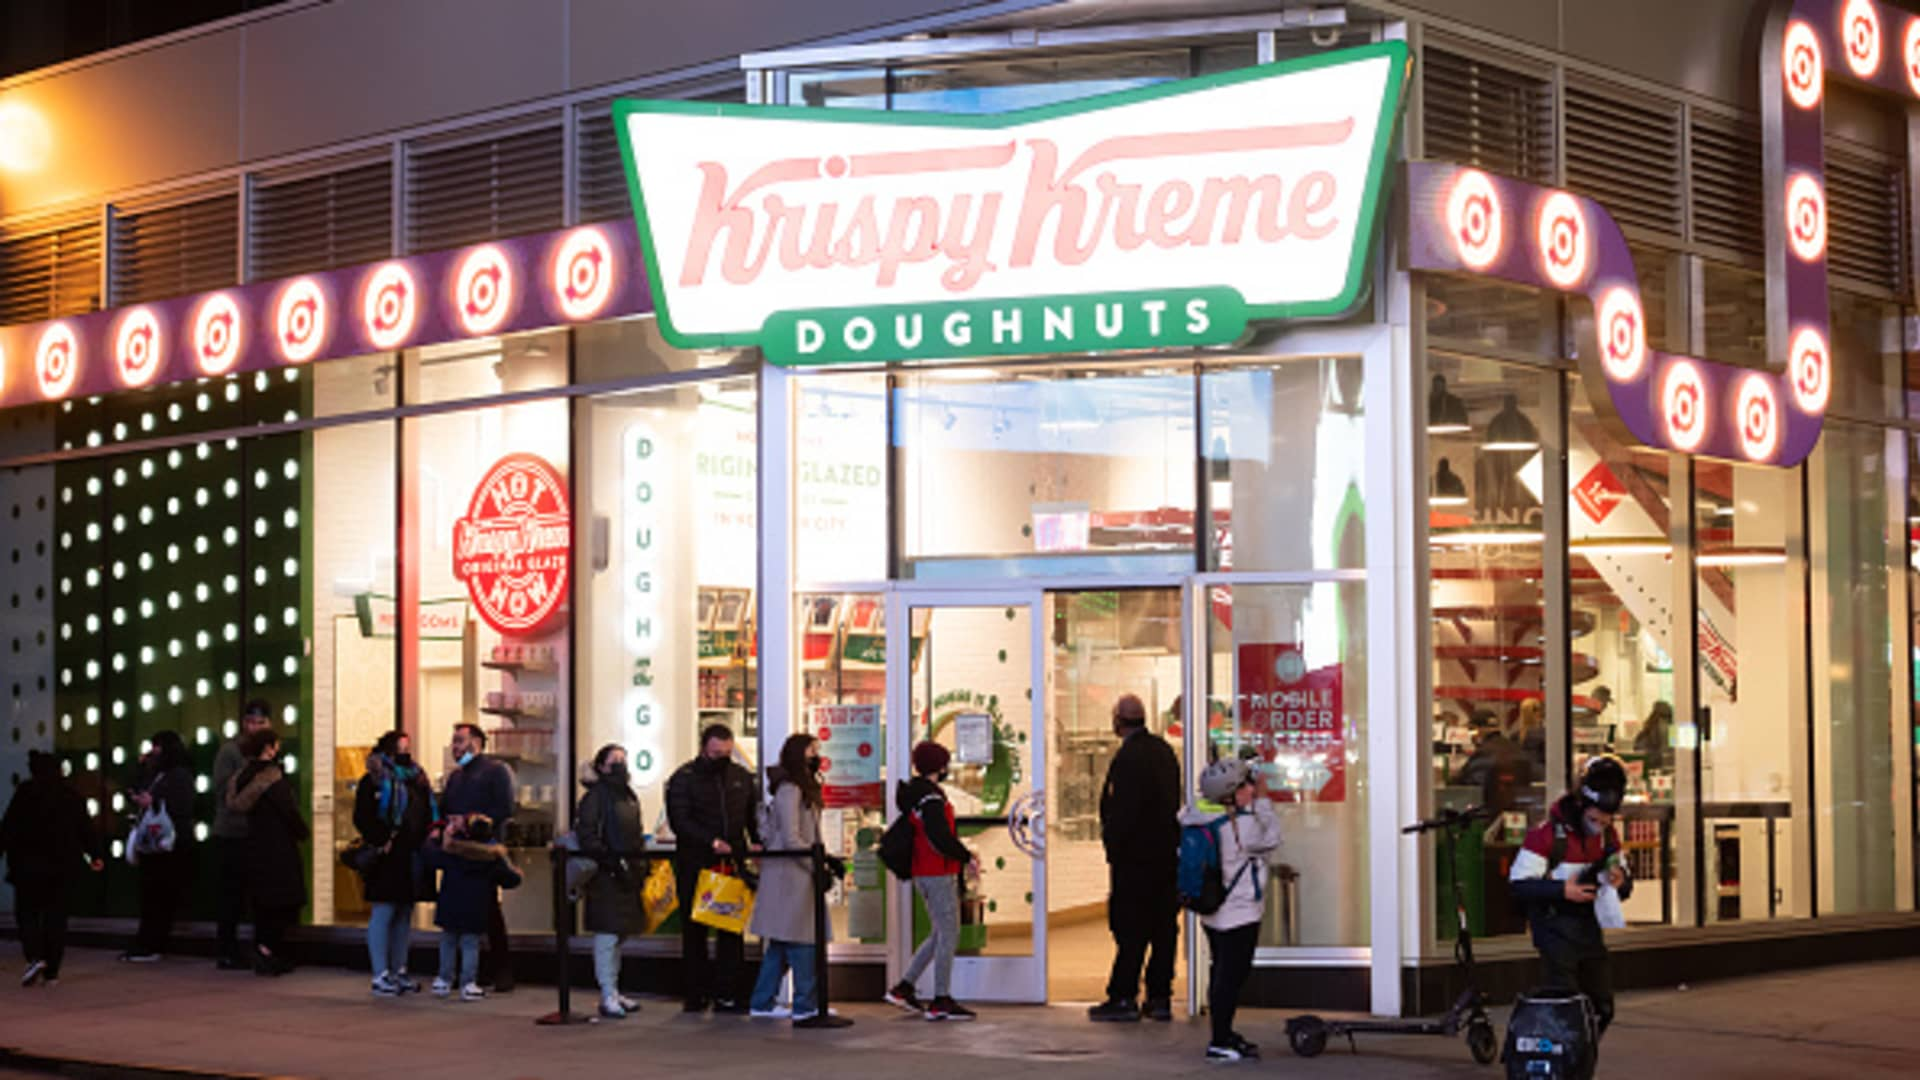 People line up outside Krispy Kreme in Times Square amid the coronavirus pandemic on March 17, 2021 in New York City. After undergoing various shutdown orders for the past 12 months the city is currently in phase 4 of its reopening plan, allowing for the reopening of low-risk outdoor activities, movie and television productions, indoor dining as well as the opening of movie theaters, all with capacity restrictions.